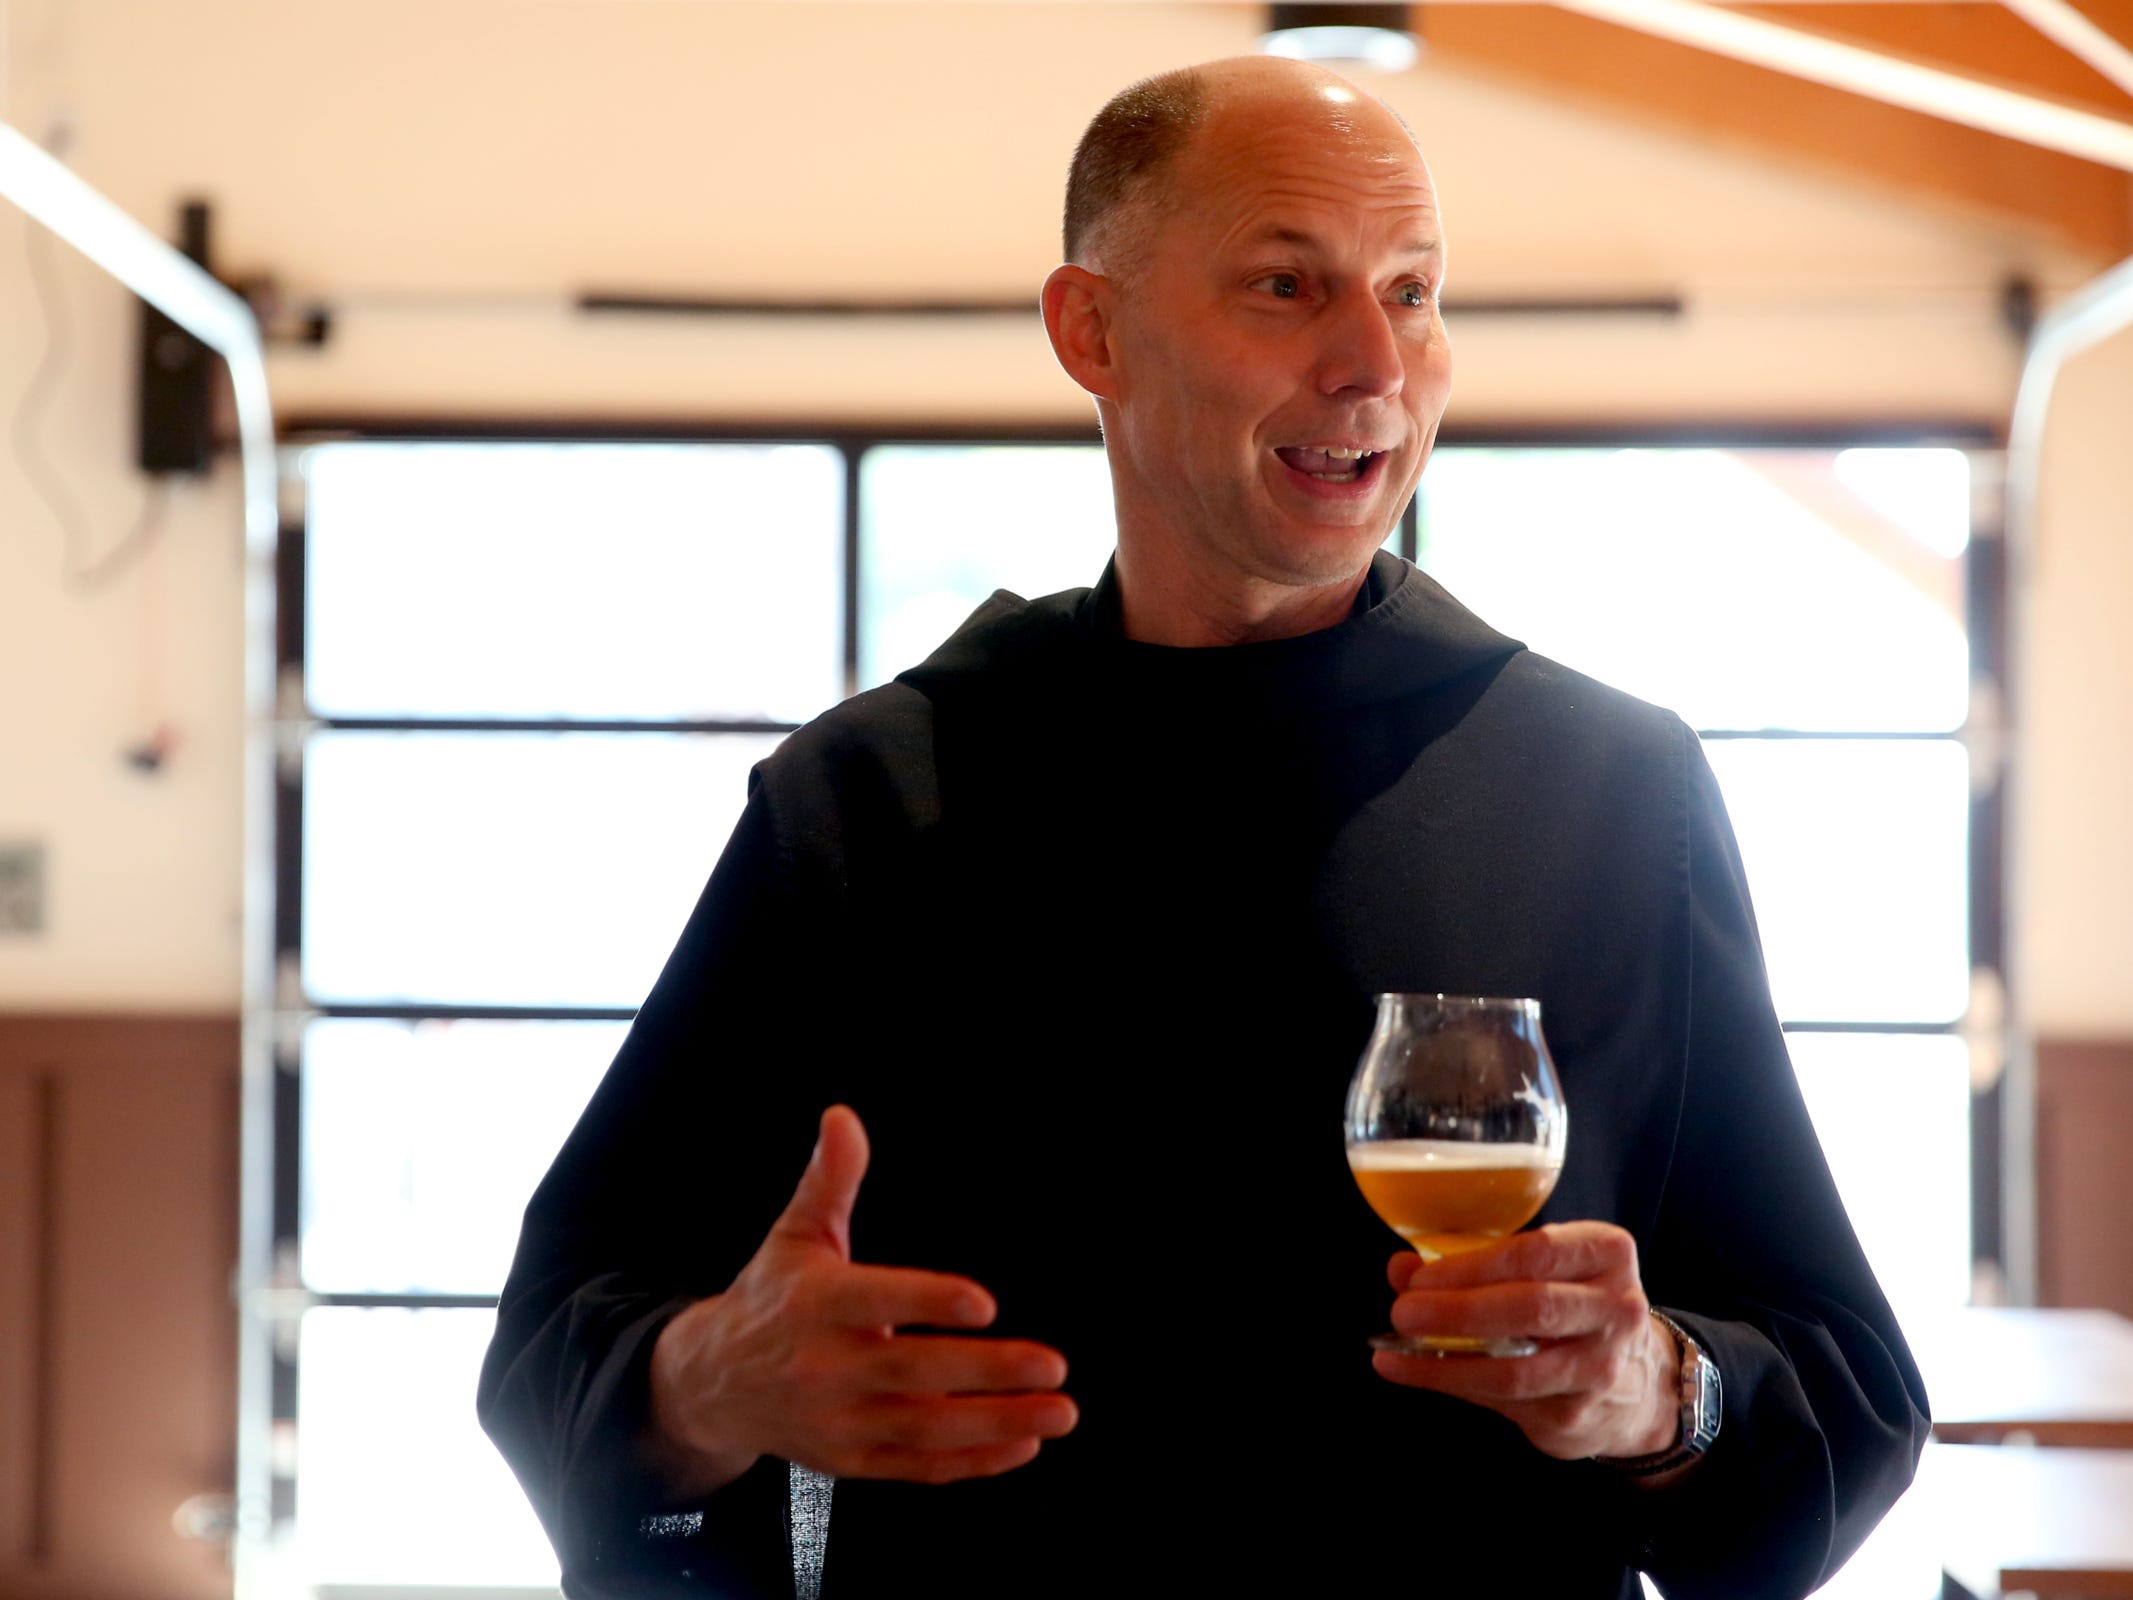 Father Martin Grassel speaks at the Benedictine Brewery in Mt. Angel on Wednesday, Sep. 5, 2018. The brewery, operated by the monks of Mount Angel Abbey, opens September 22.